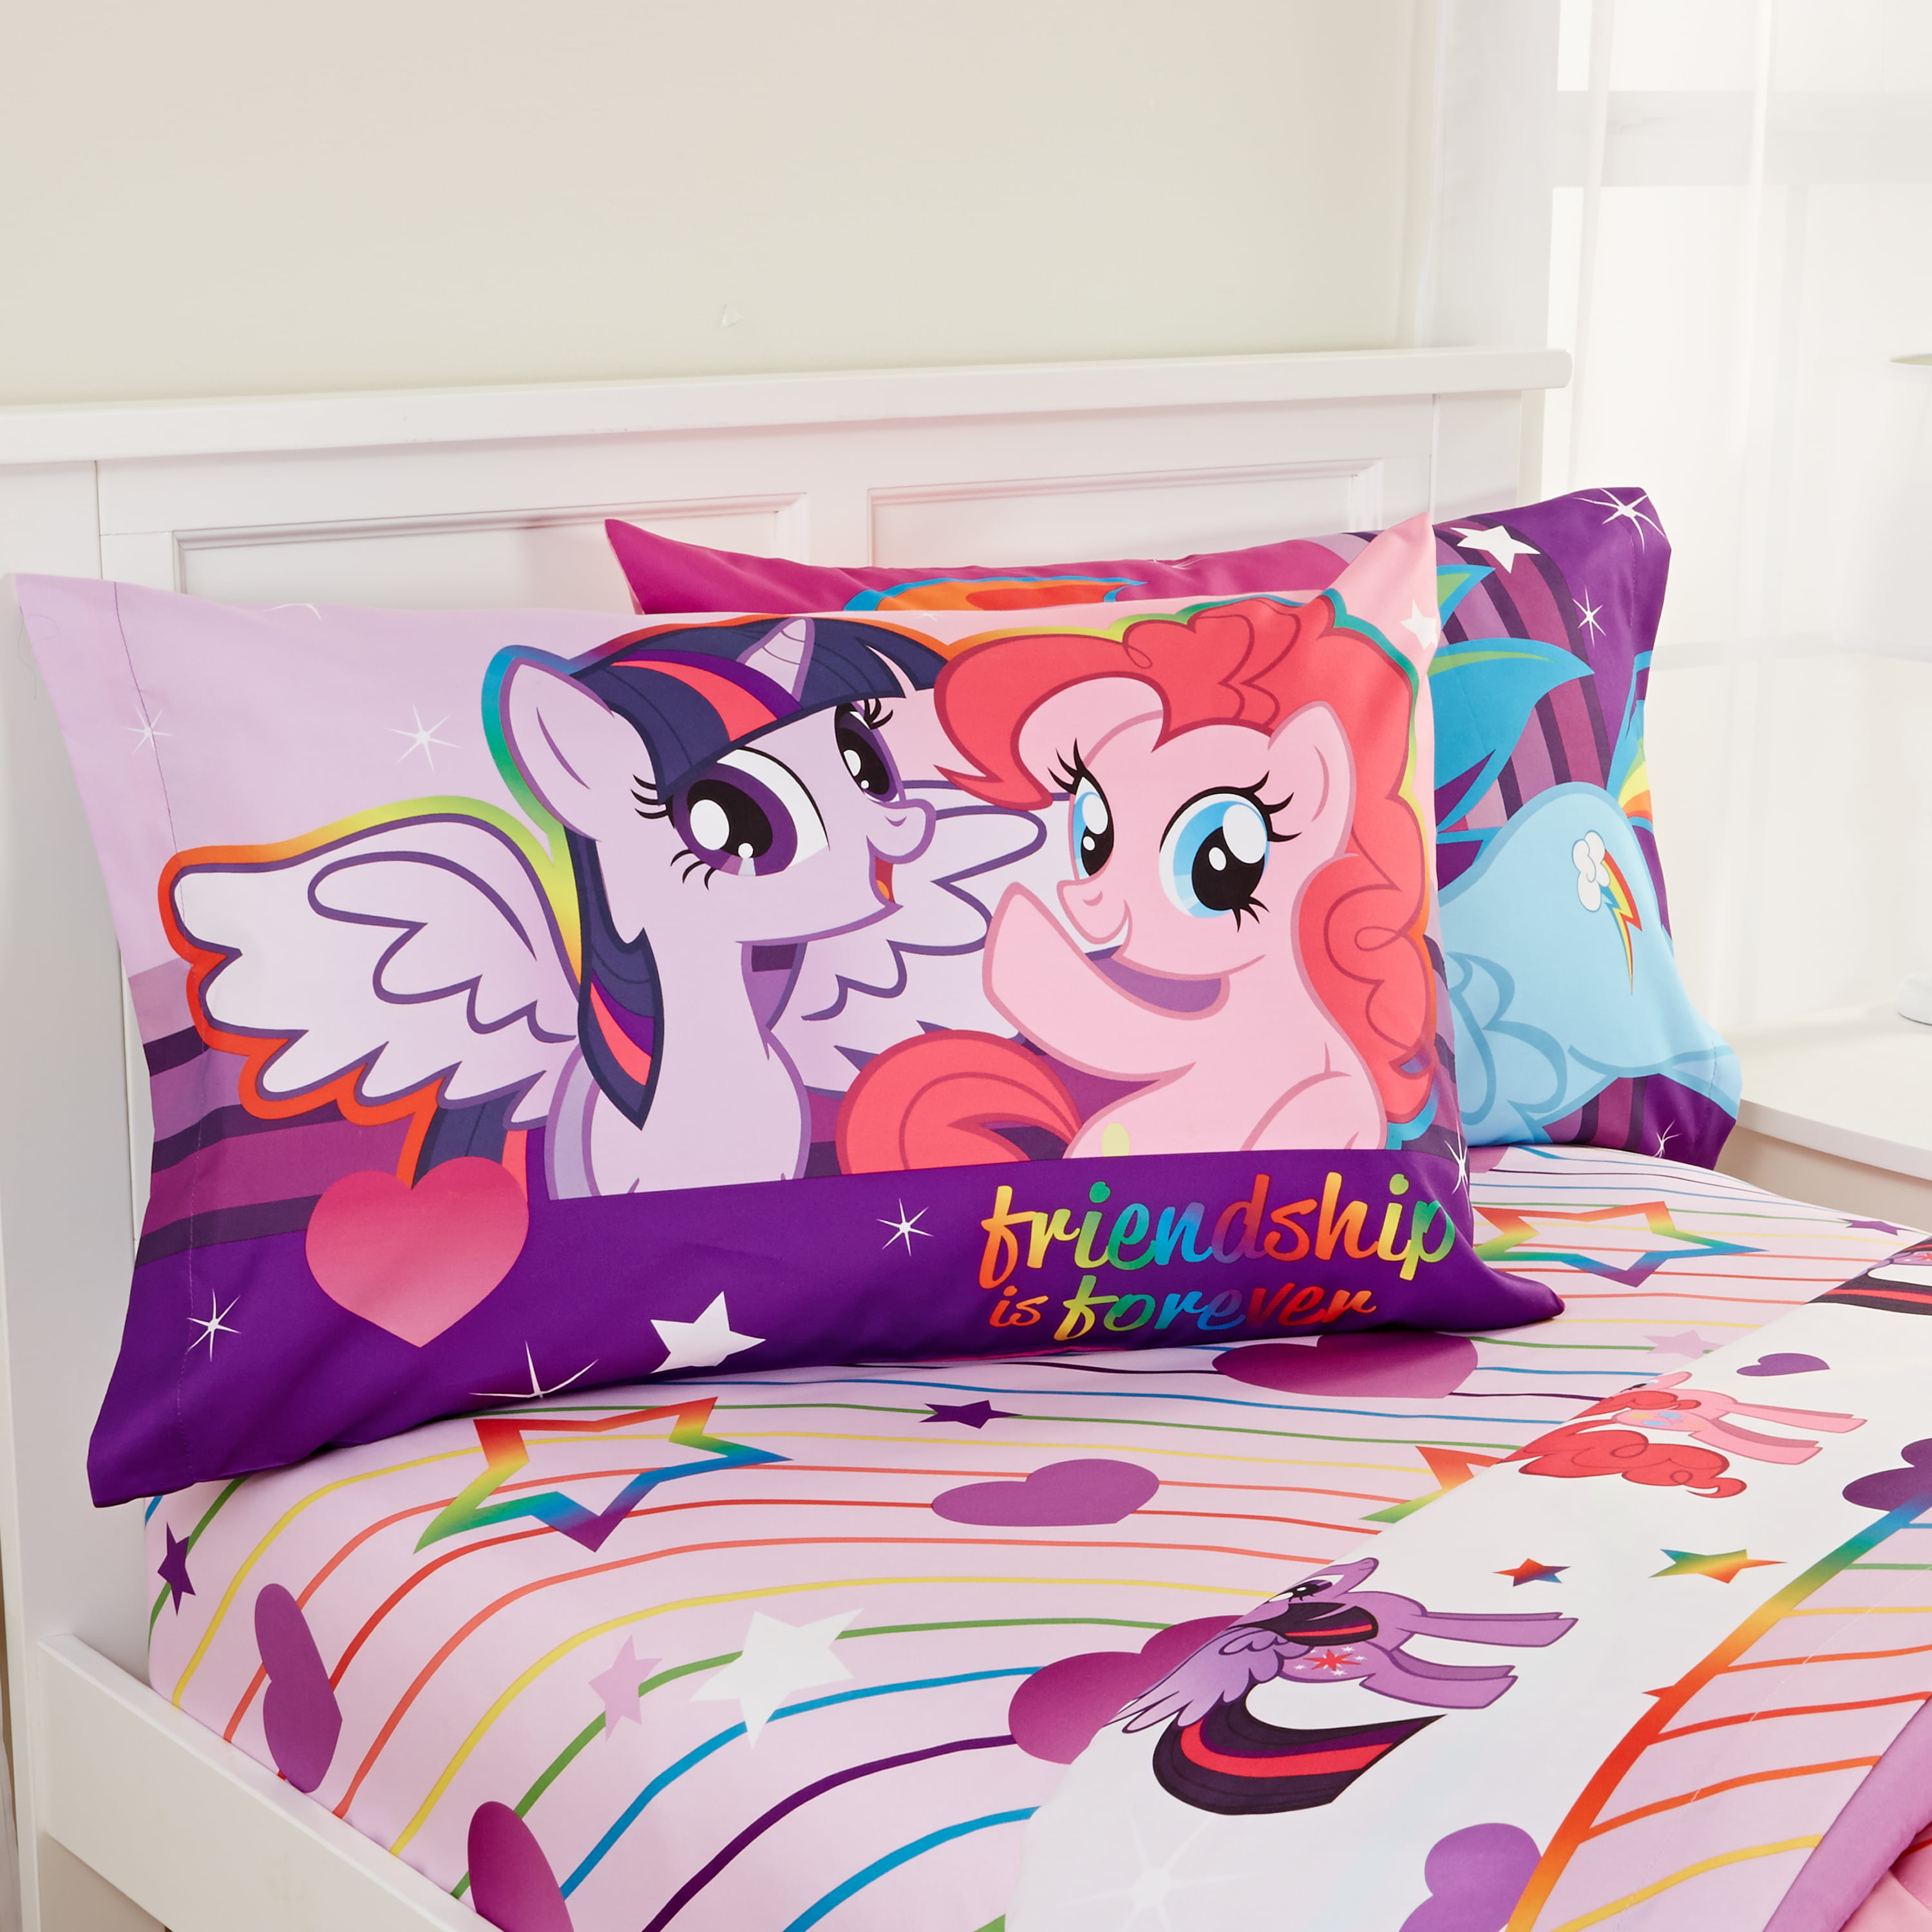 My Little Pony Sheet Set, Kids Bedding, Pink and Purple, 3 Piece